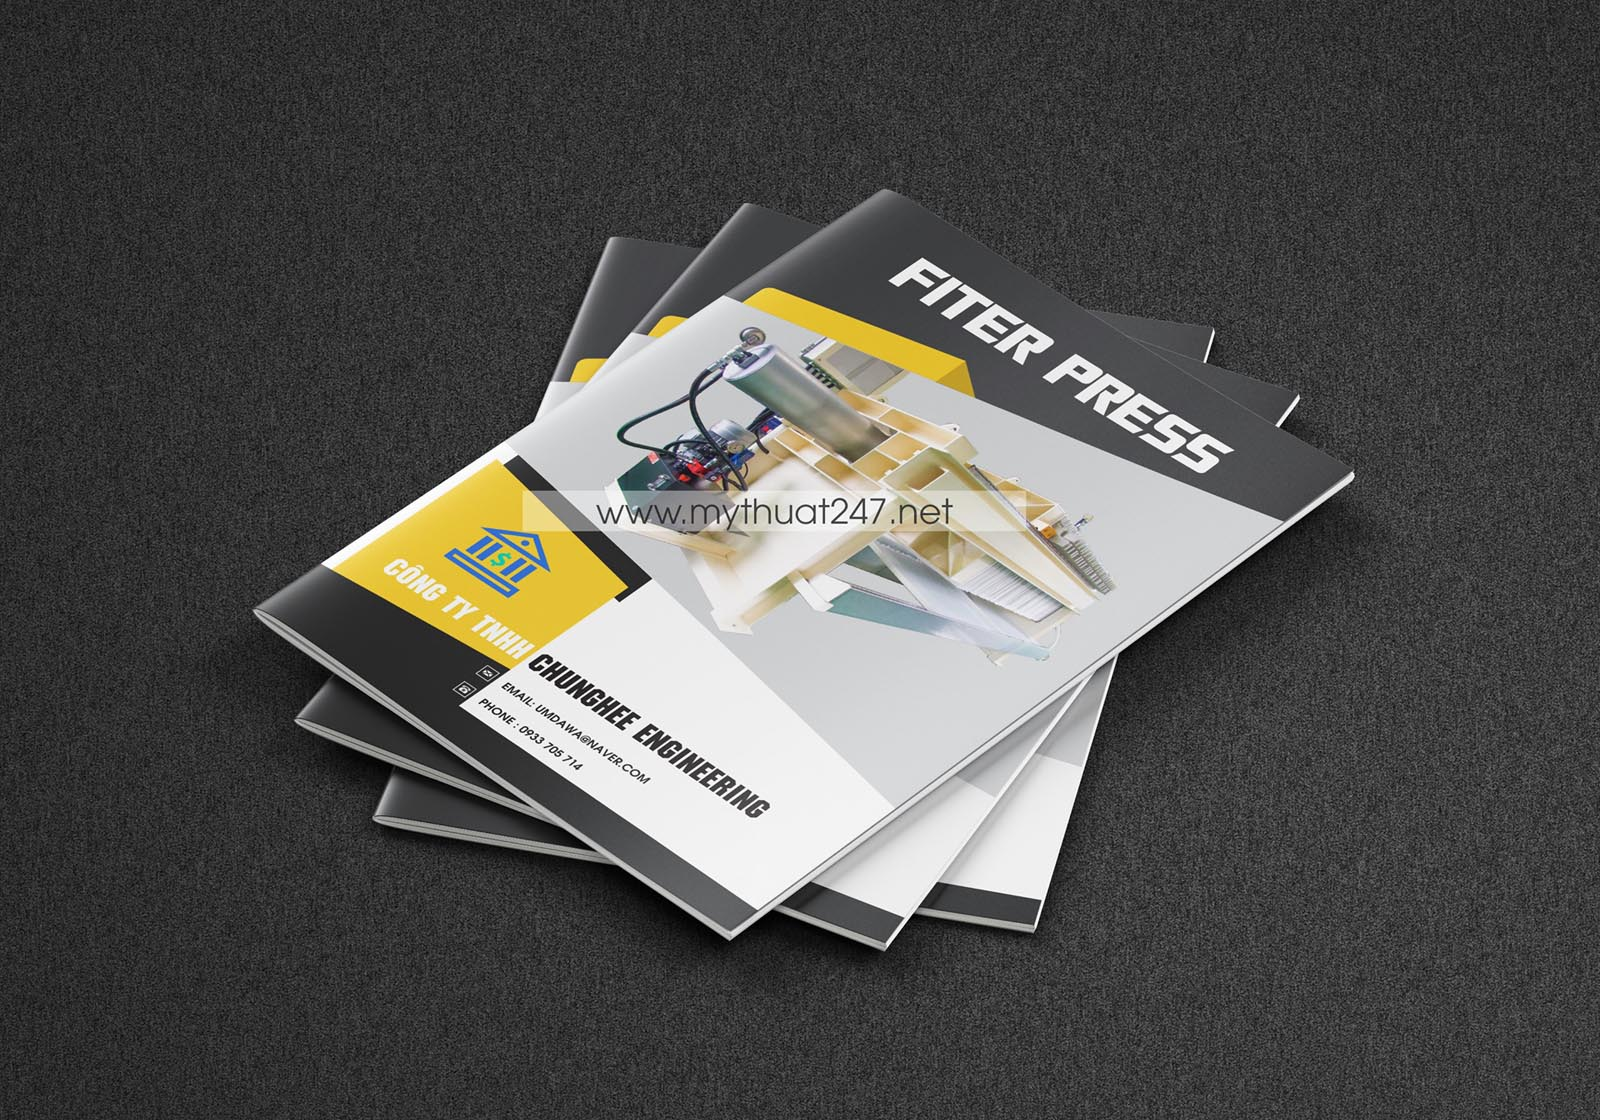 Thiết kế catalogue công ty Chunghee engineering